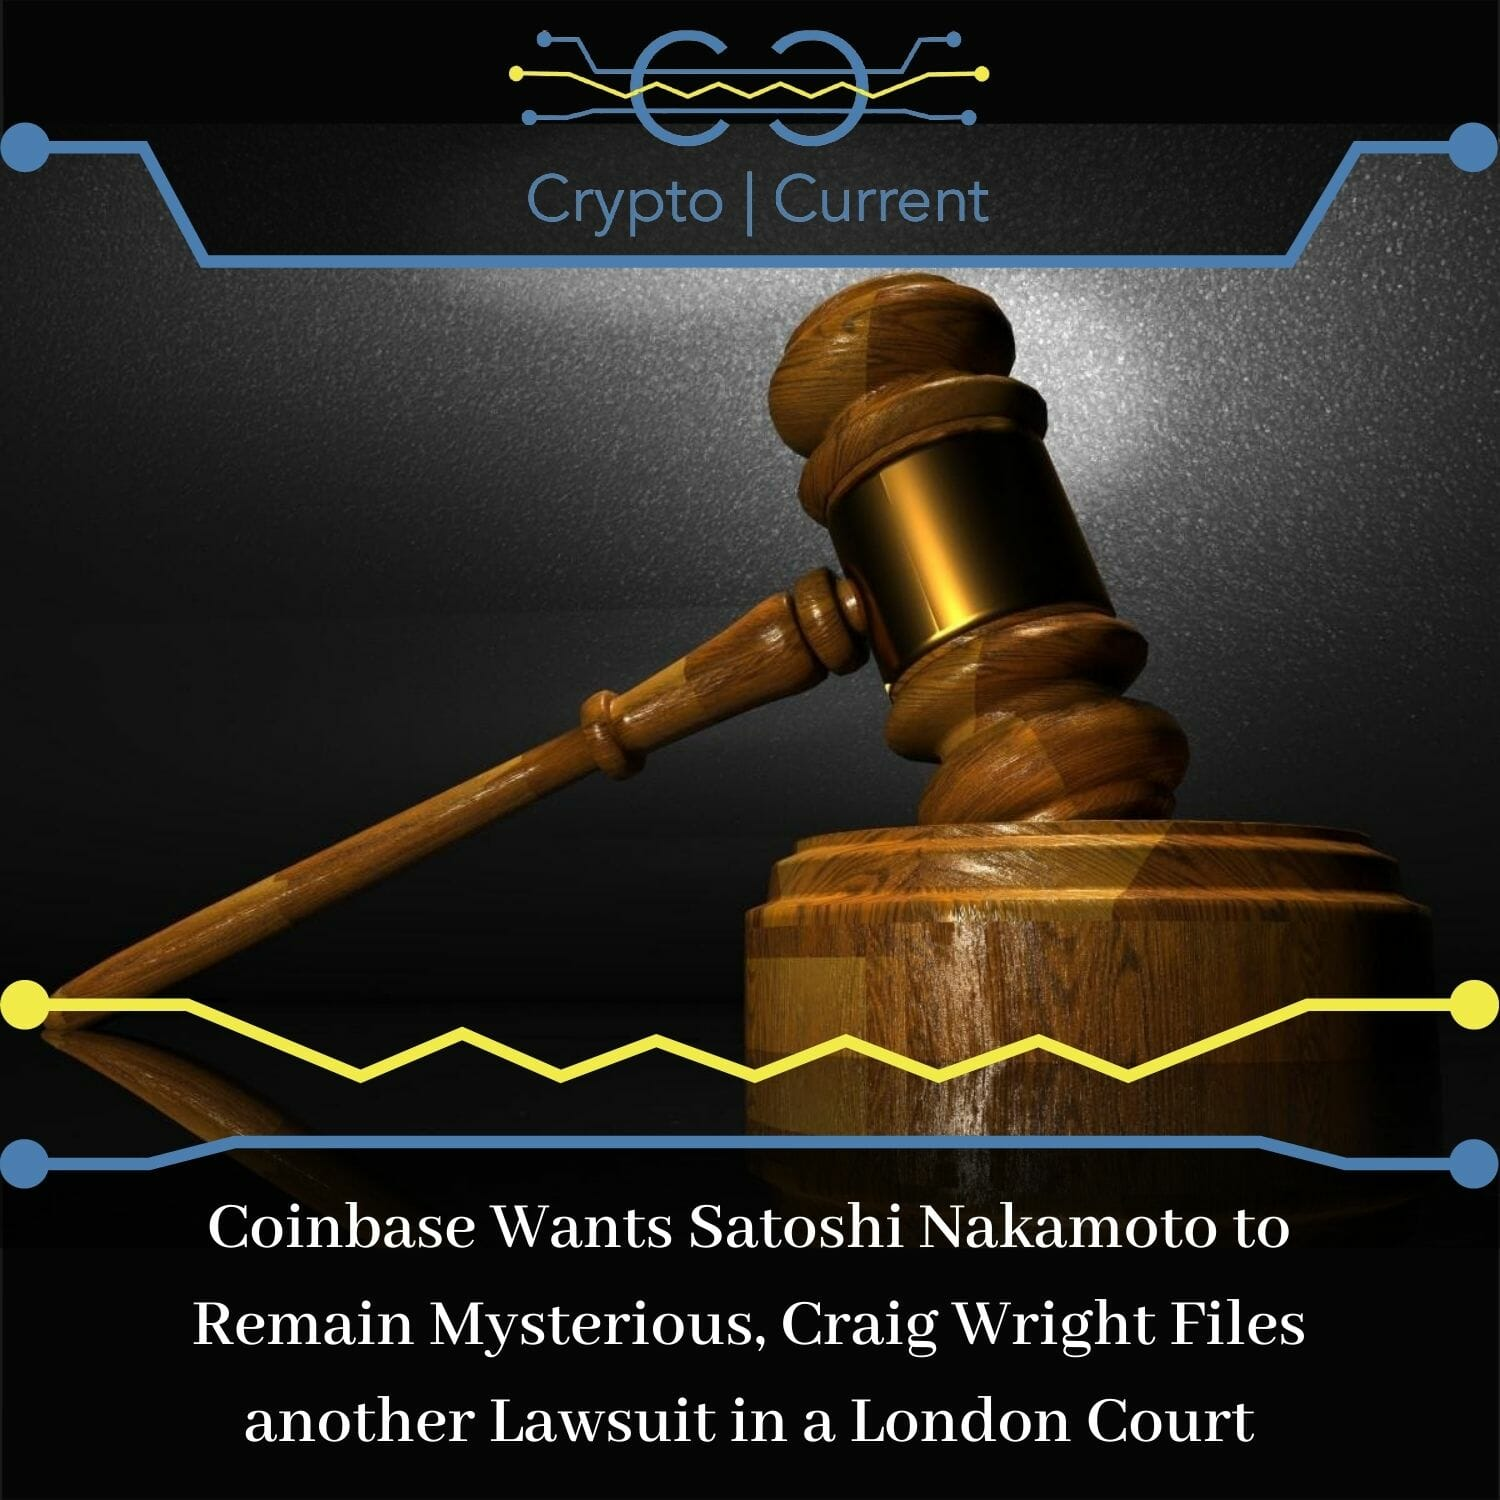 Coinbase Wants Satoshi Nakamoto to Remain Mysterious, Craig Wright Files another Lawsuit in a London Court